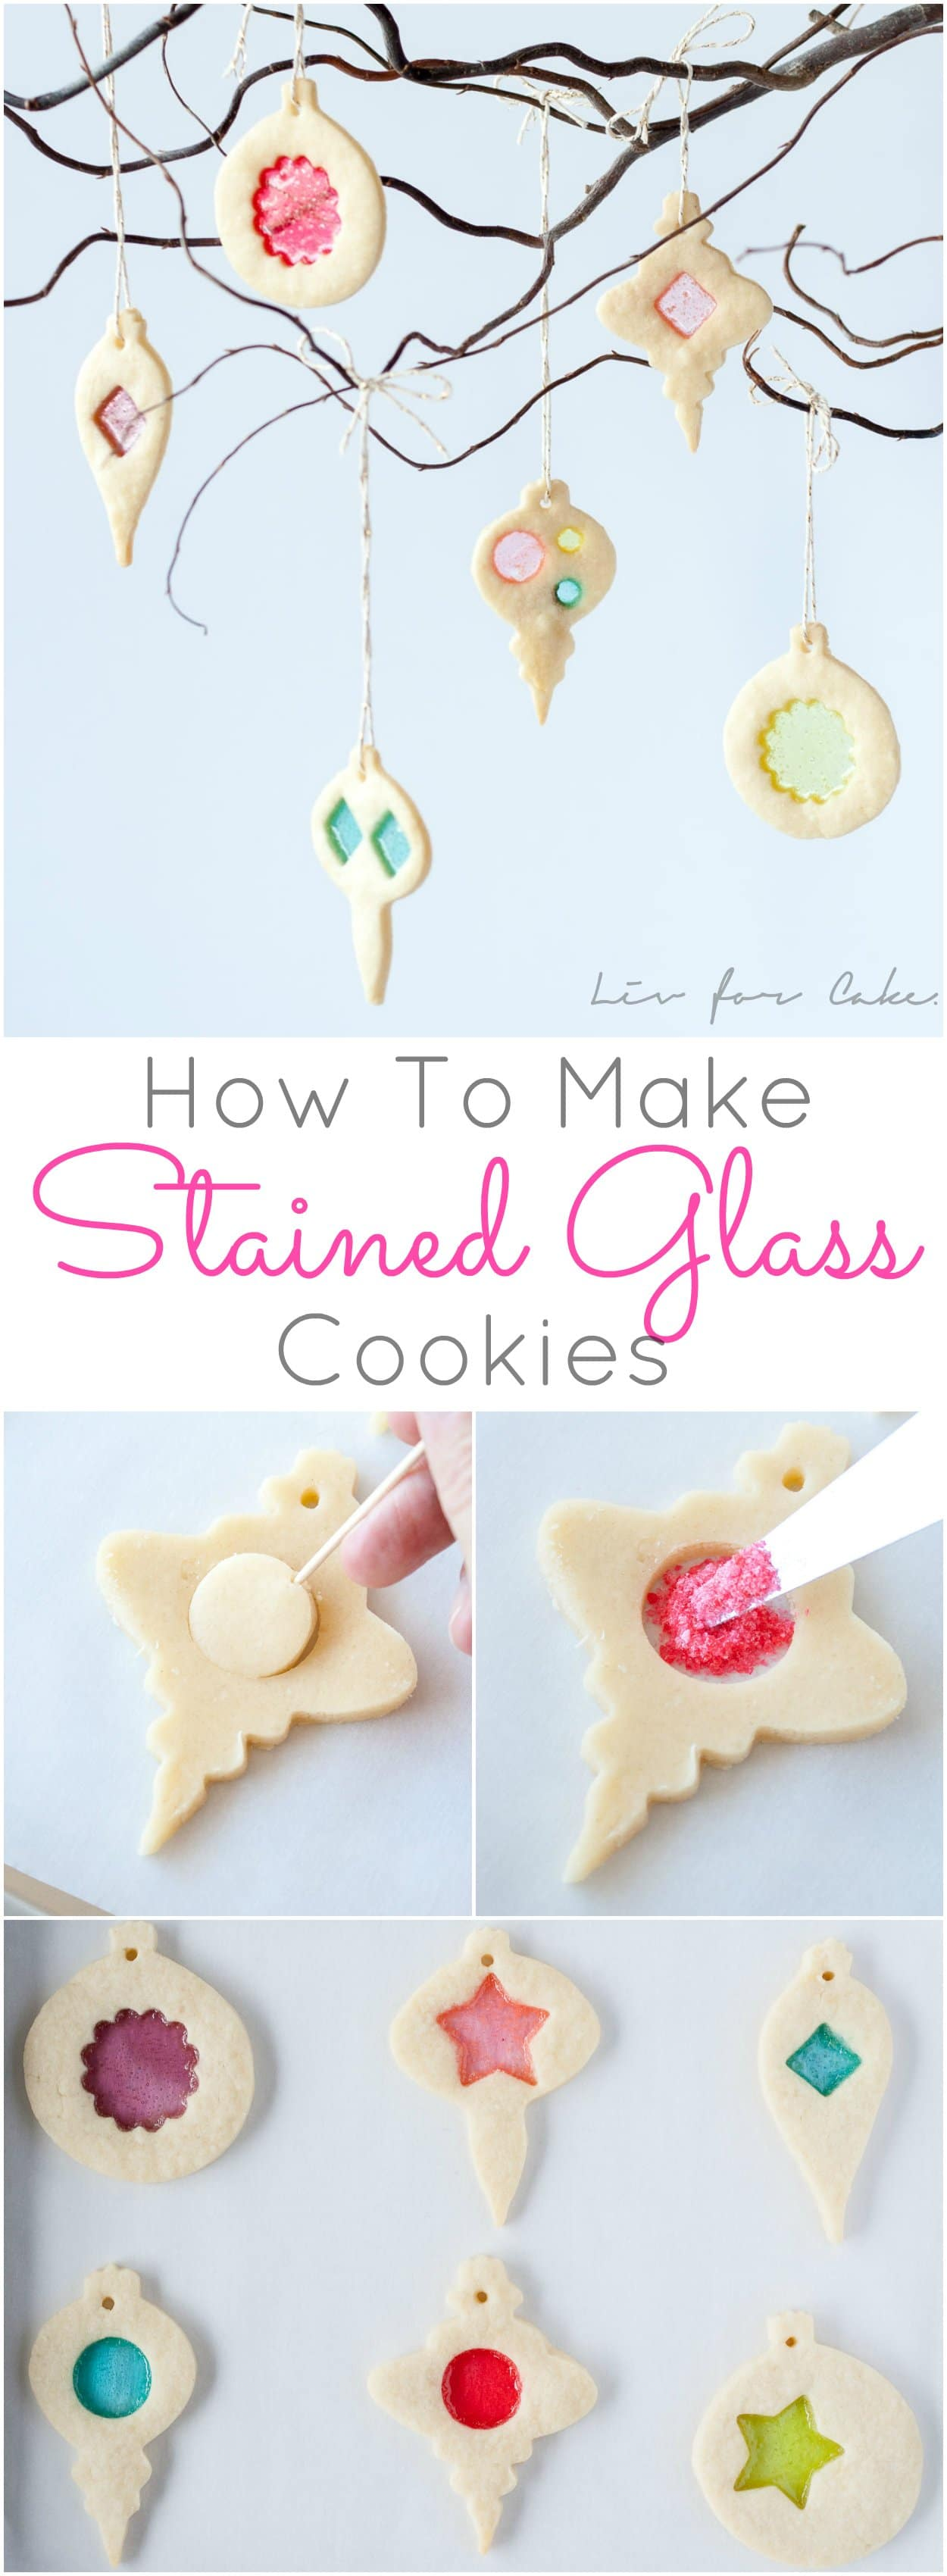 Cookie and candy all in one! Learn how to make stunning stained glass cookies with this detailed tutorial. Perfect for holiday cookie exchanges or hanging on your tree! | livforcake.com